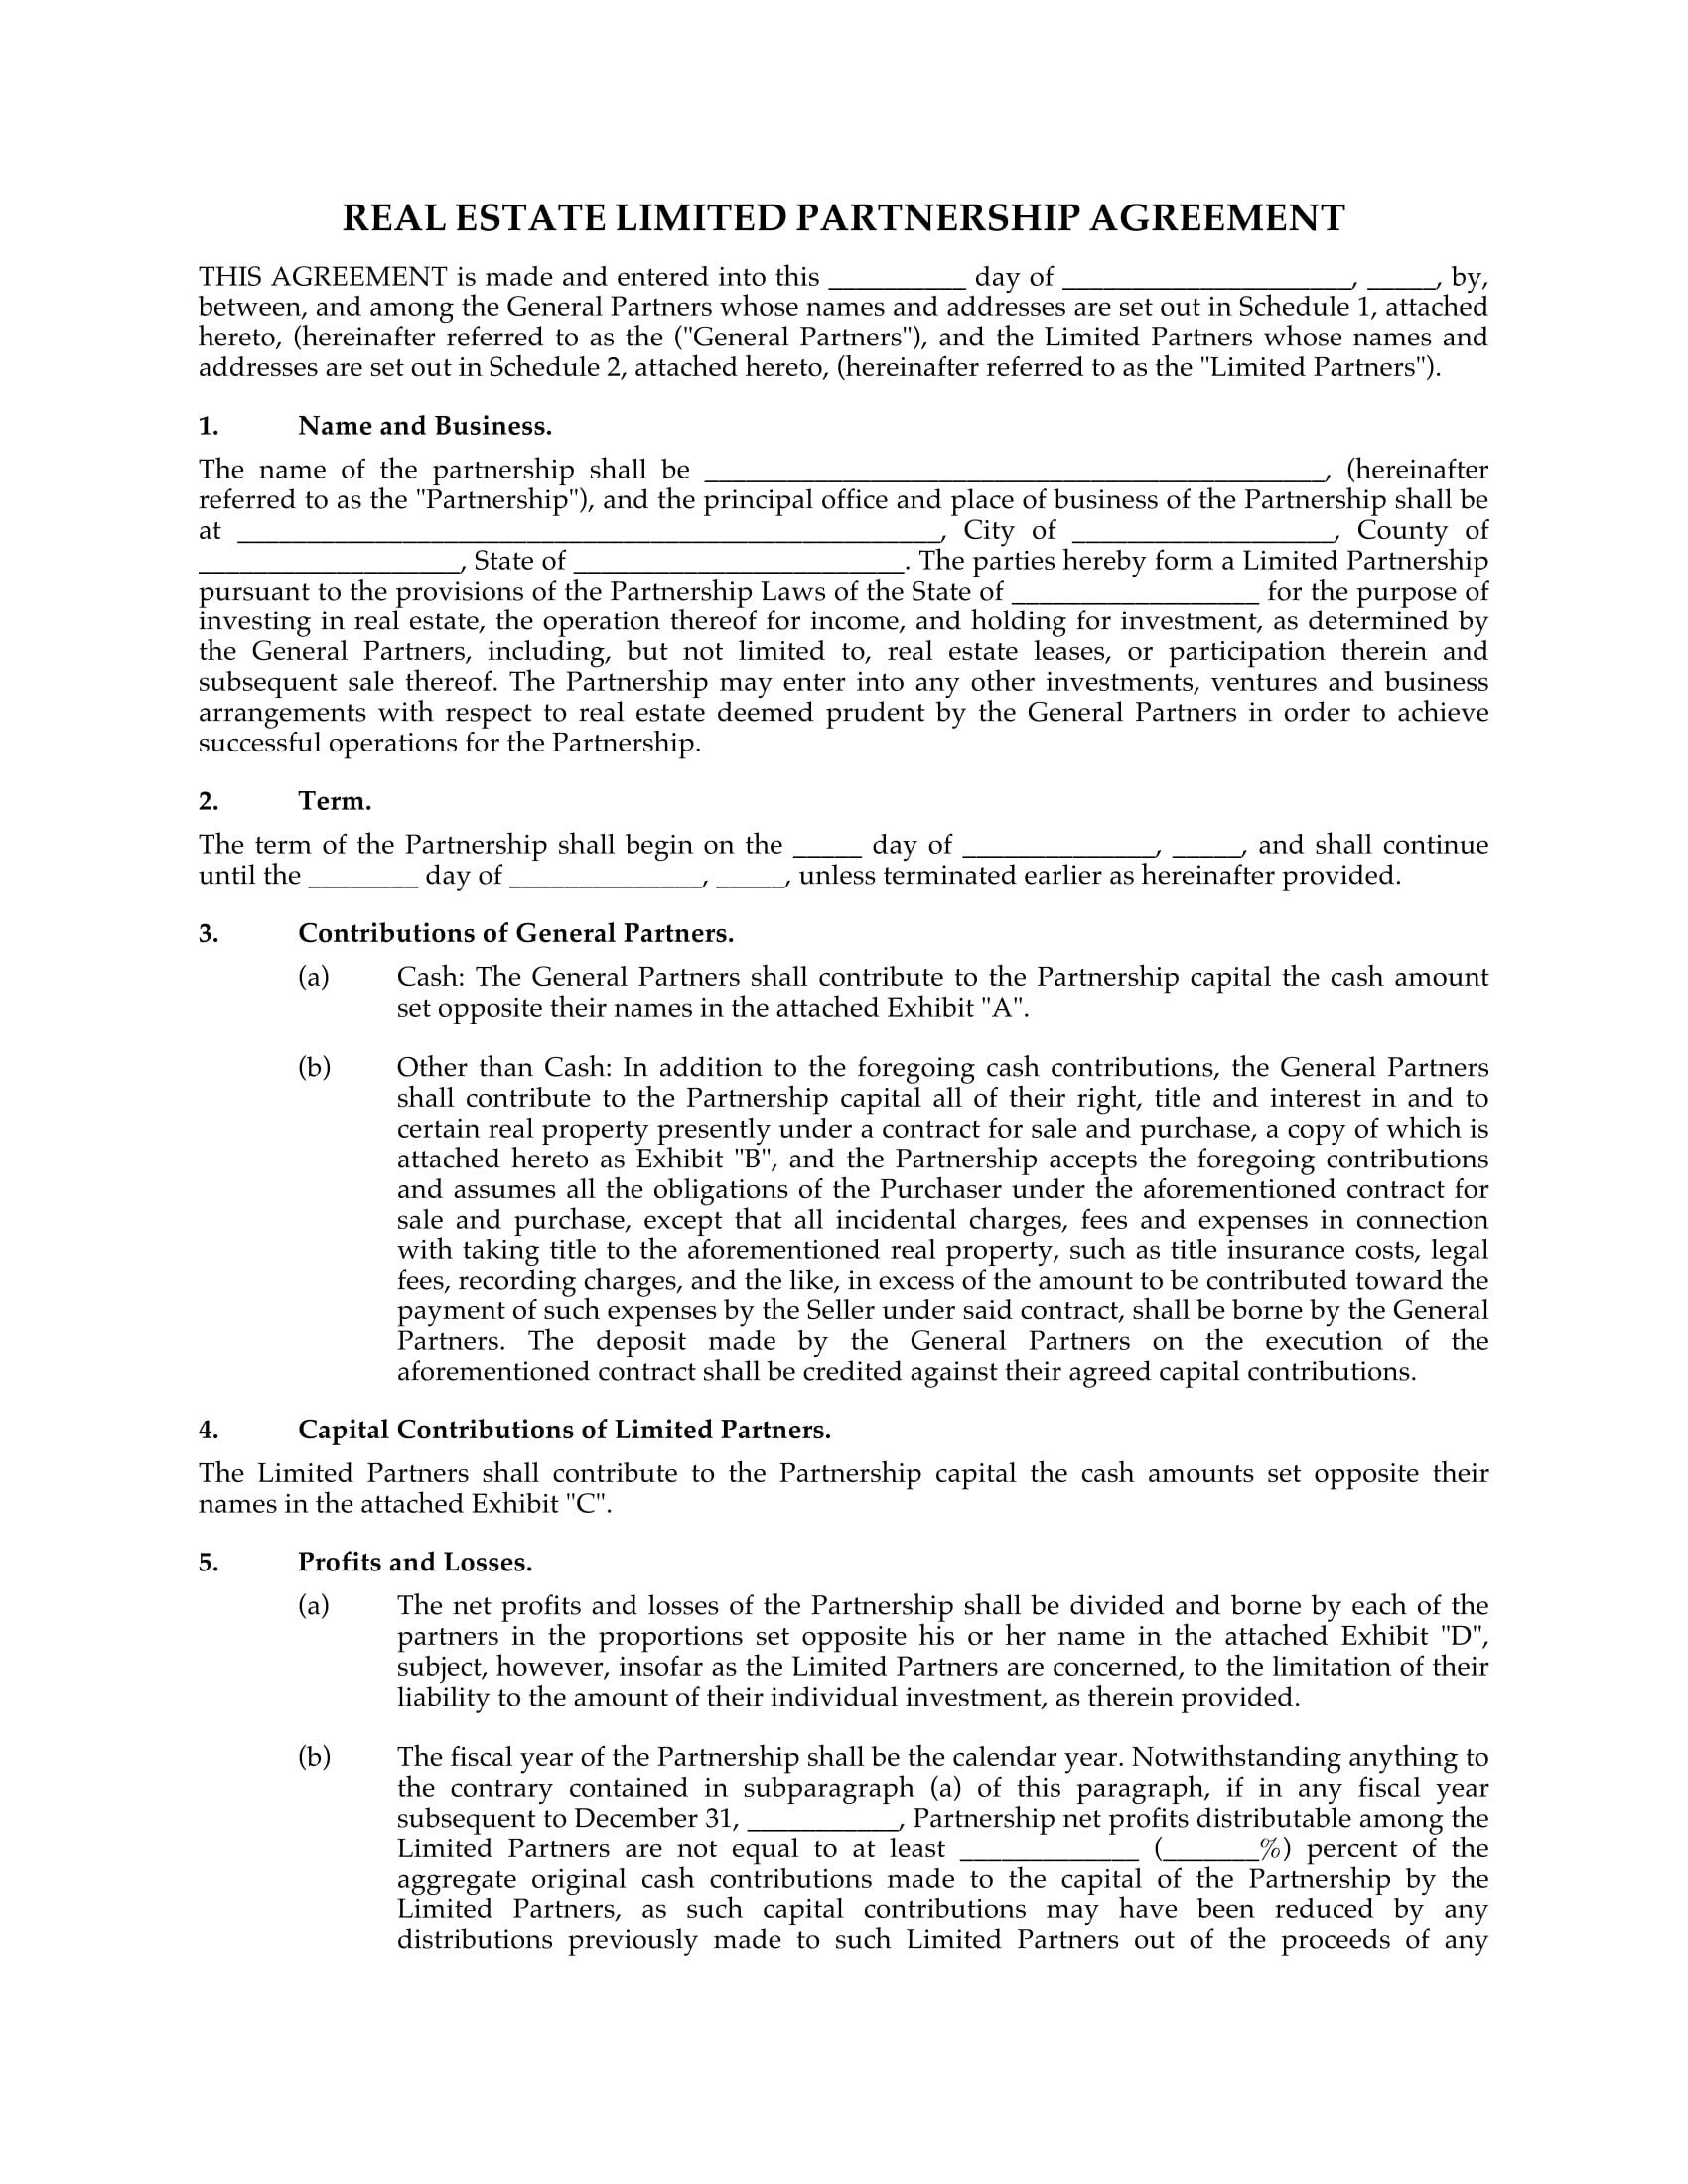 Real Estate Partnership Agreement 4 Limited Partnership Agreement forms Word Pdf